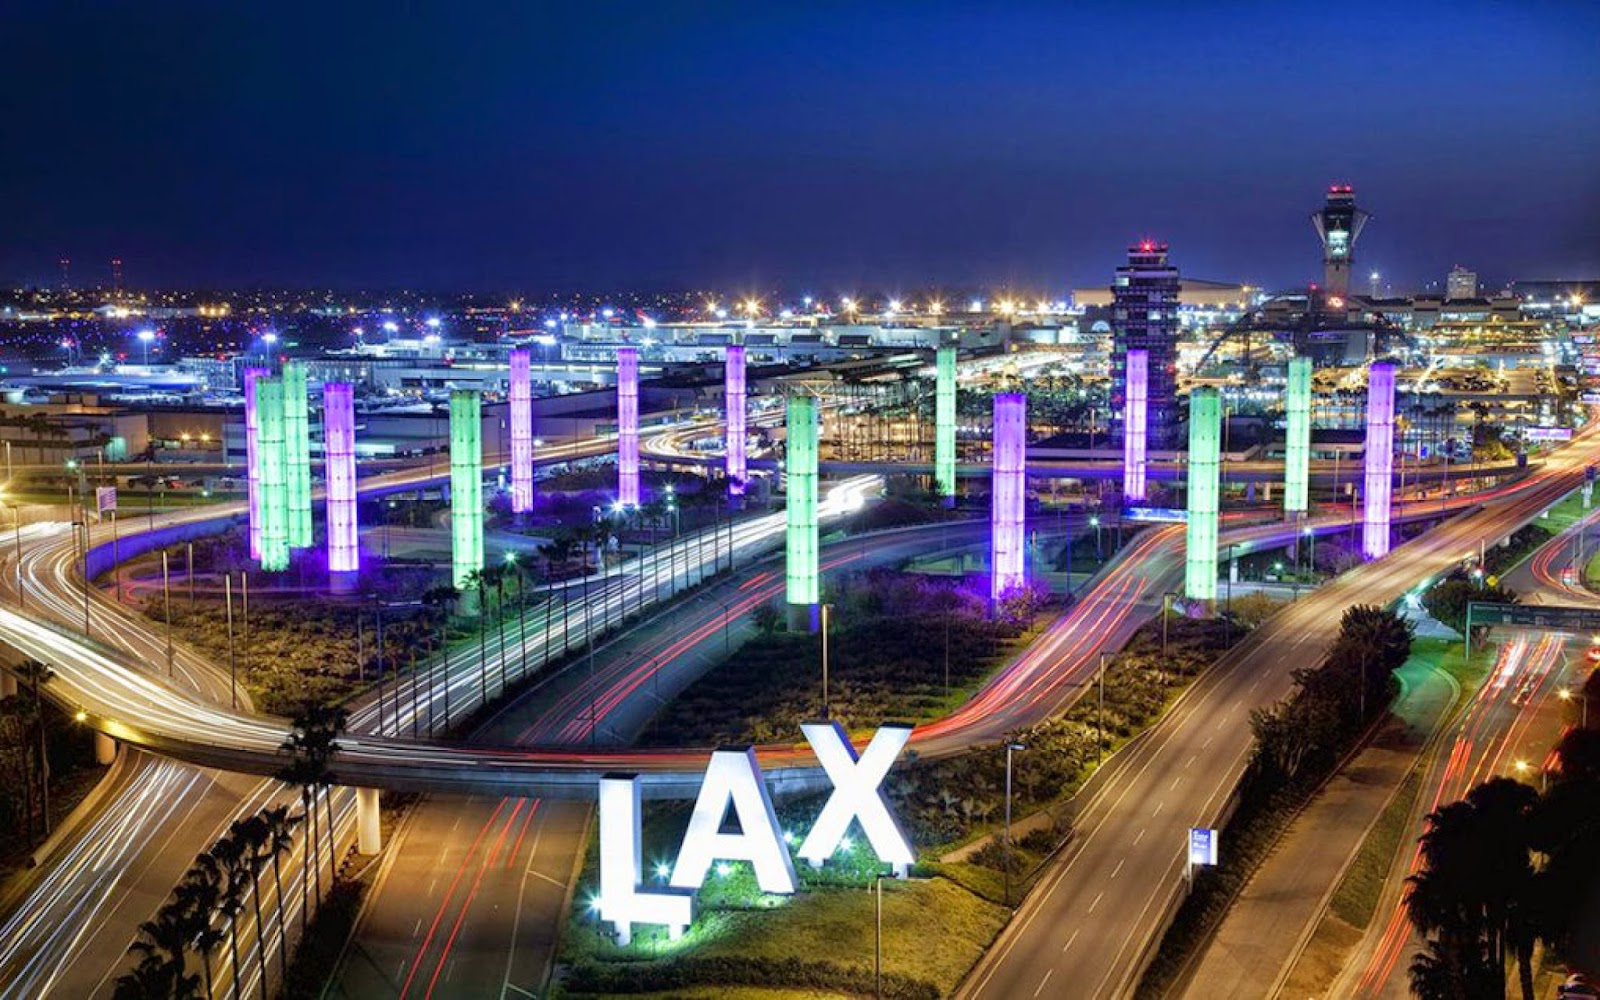 Worlds 10 Busiest airports | Los Angeles International Airport, USA – 67 million passengers each year